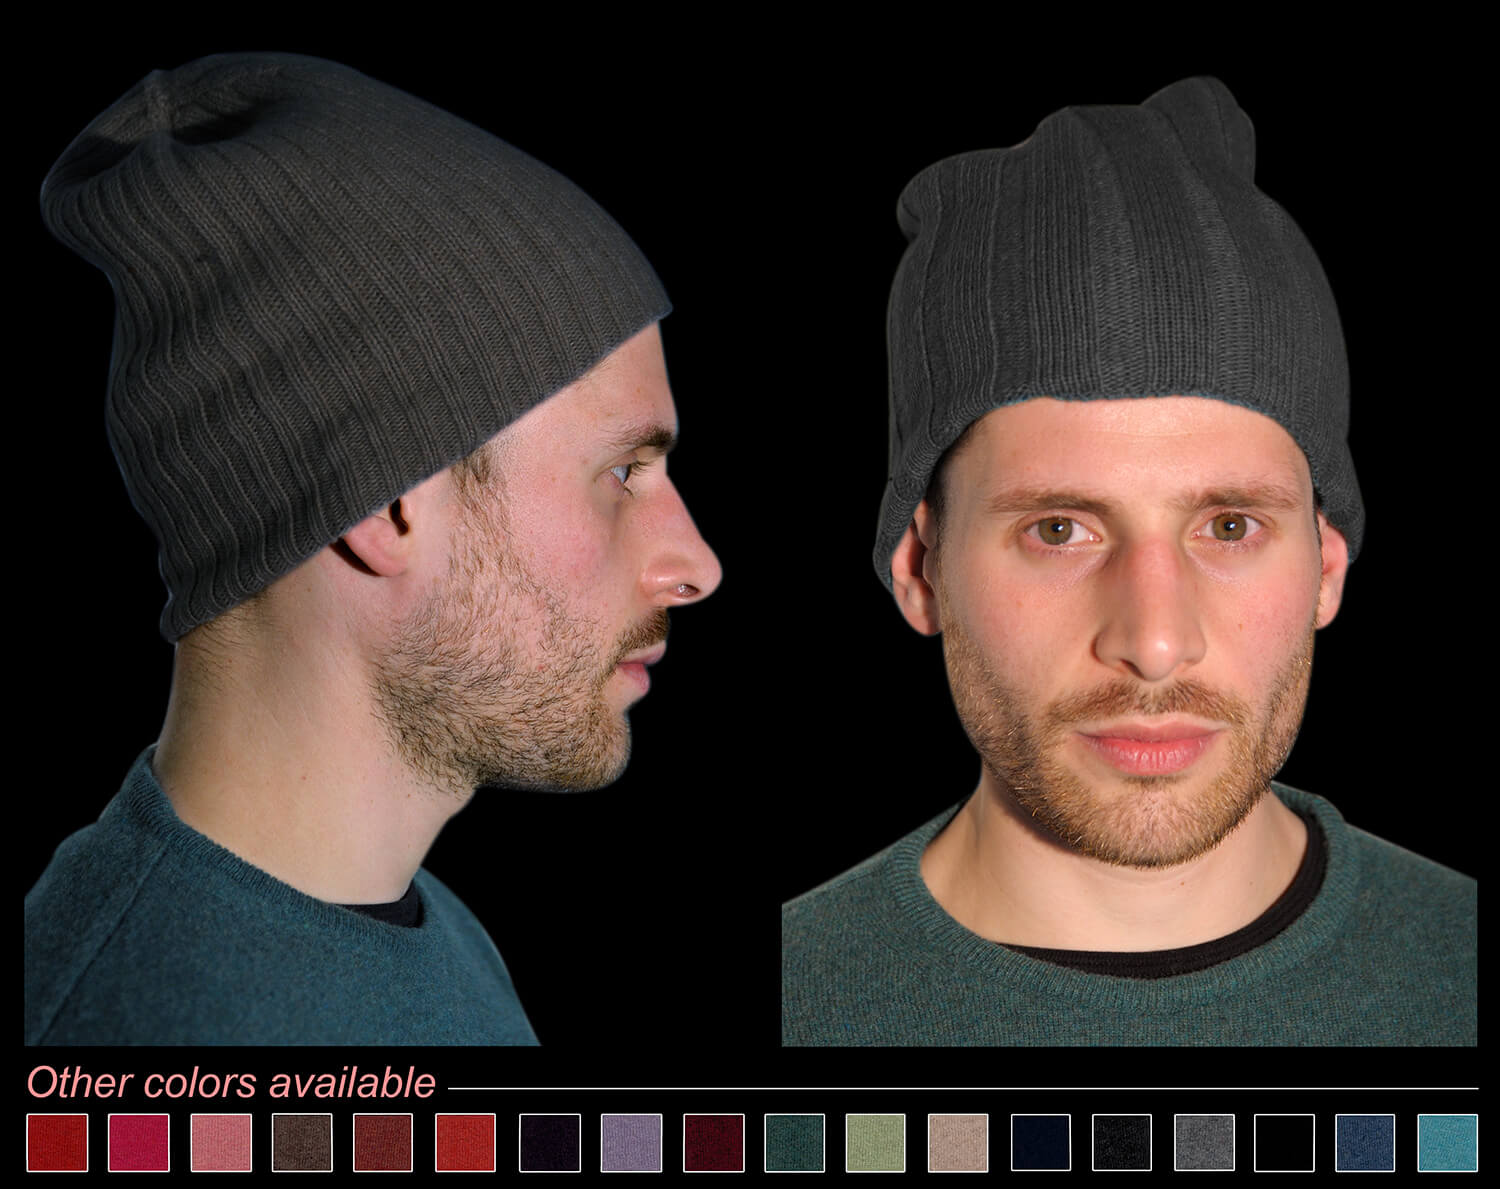 Man hat color anthracite code 119 and 298